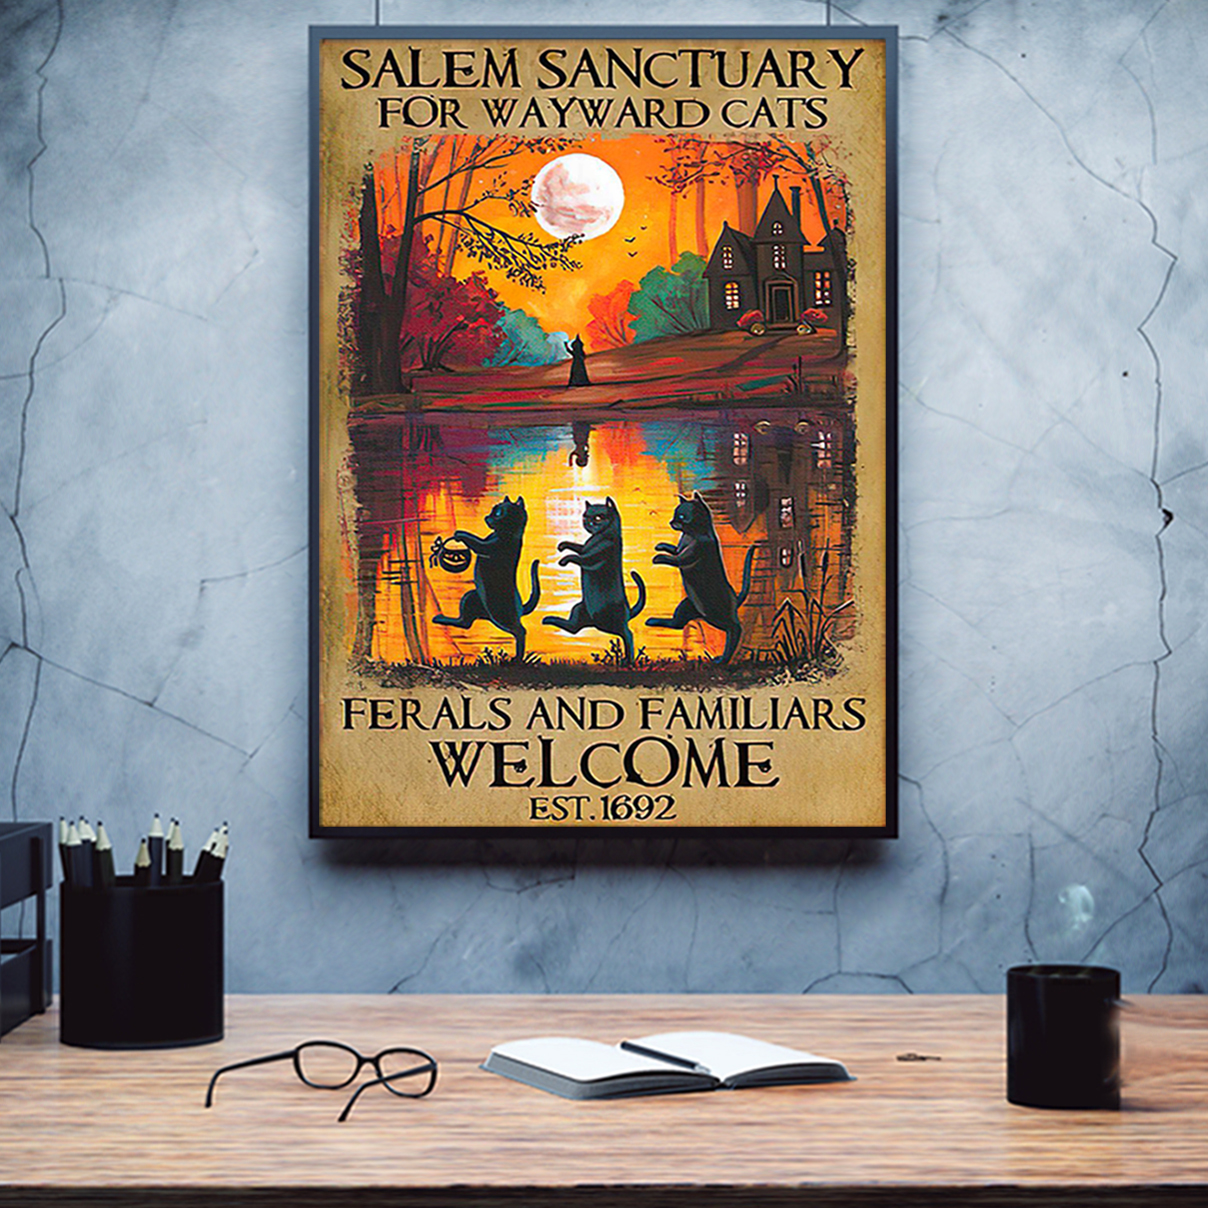 Halloween salem sanctuary for wayward cats ferals and familiars welcome poster A3